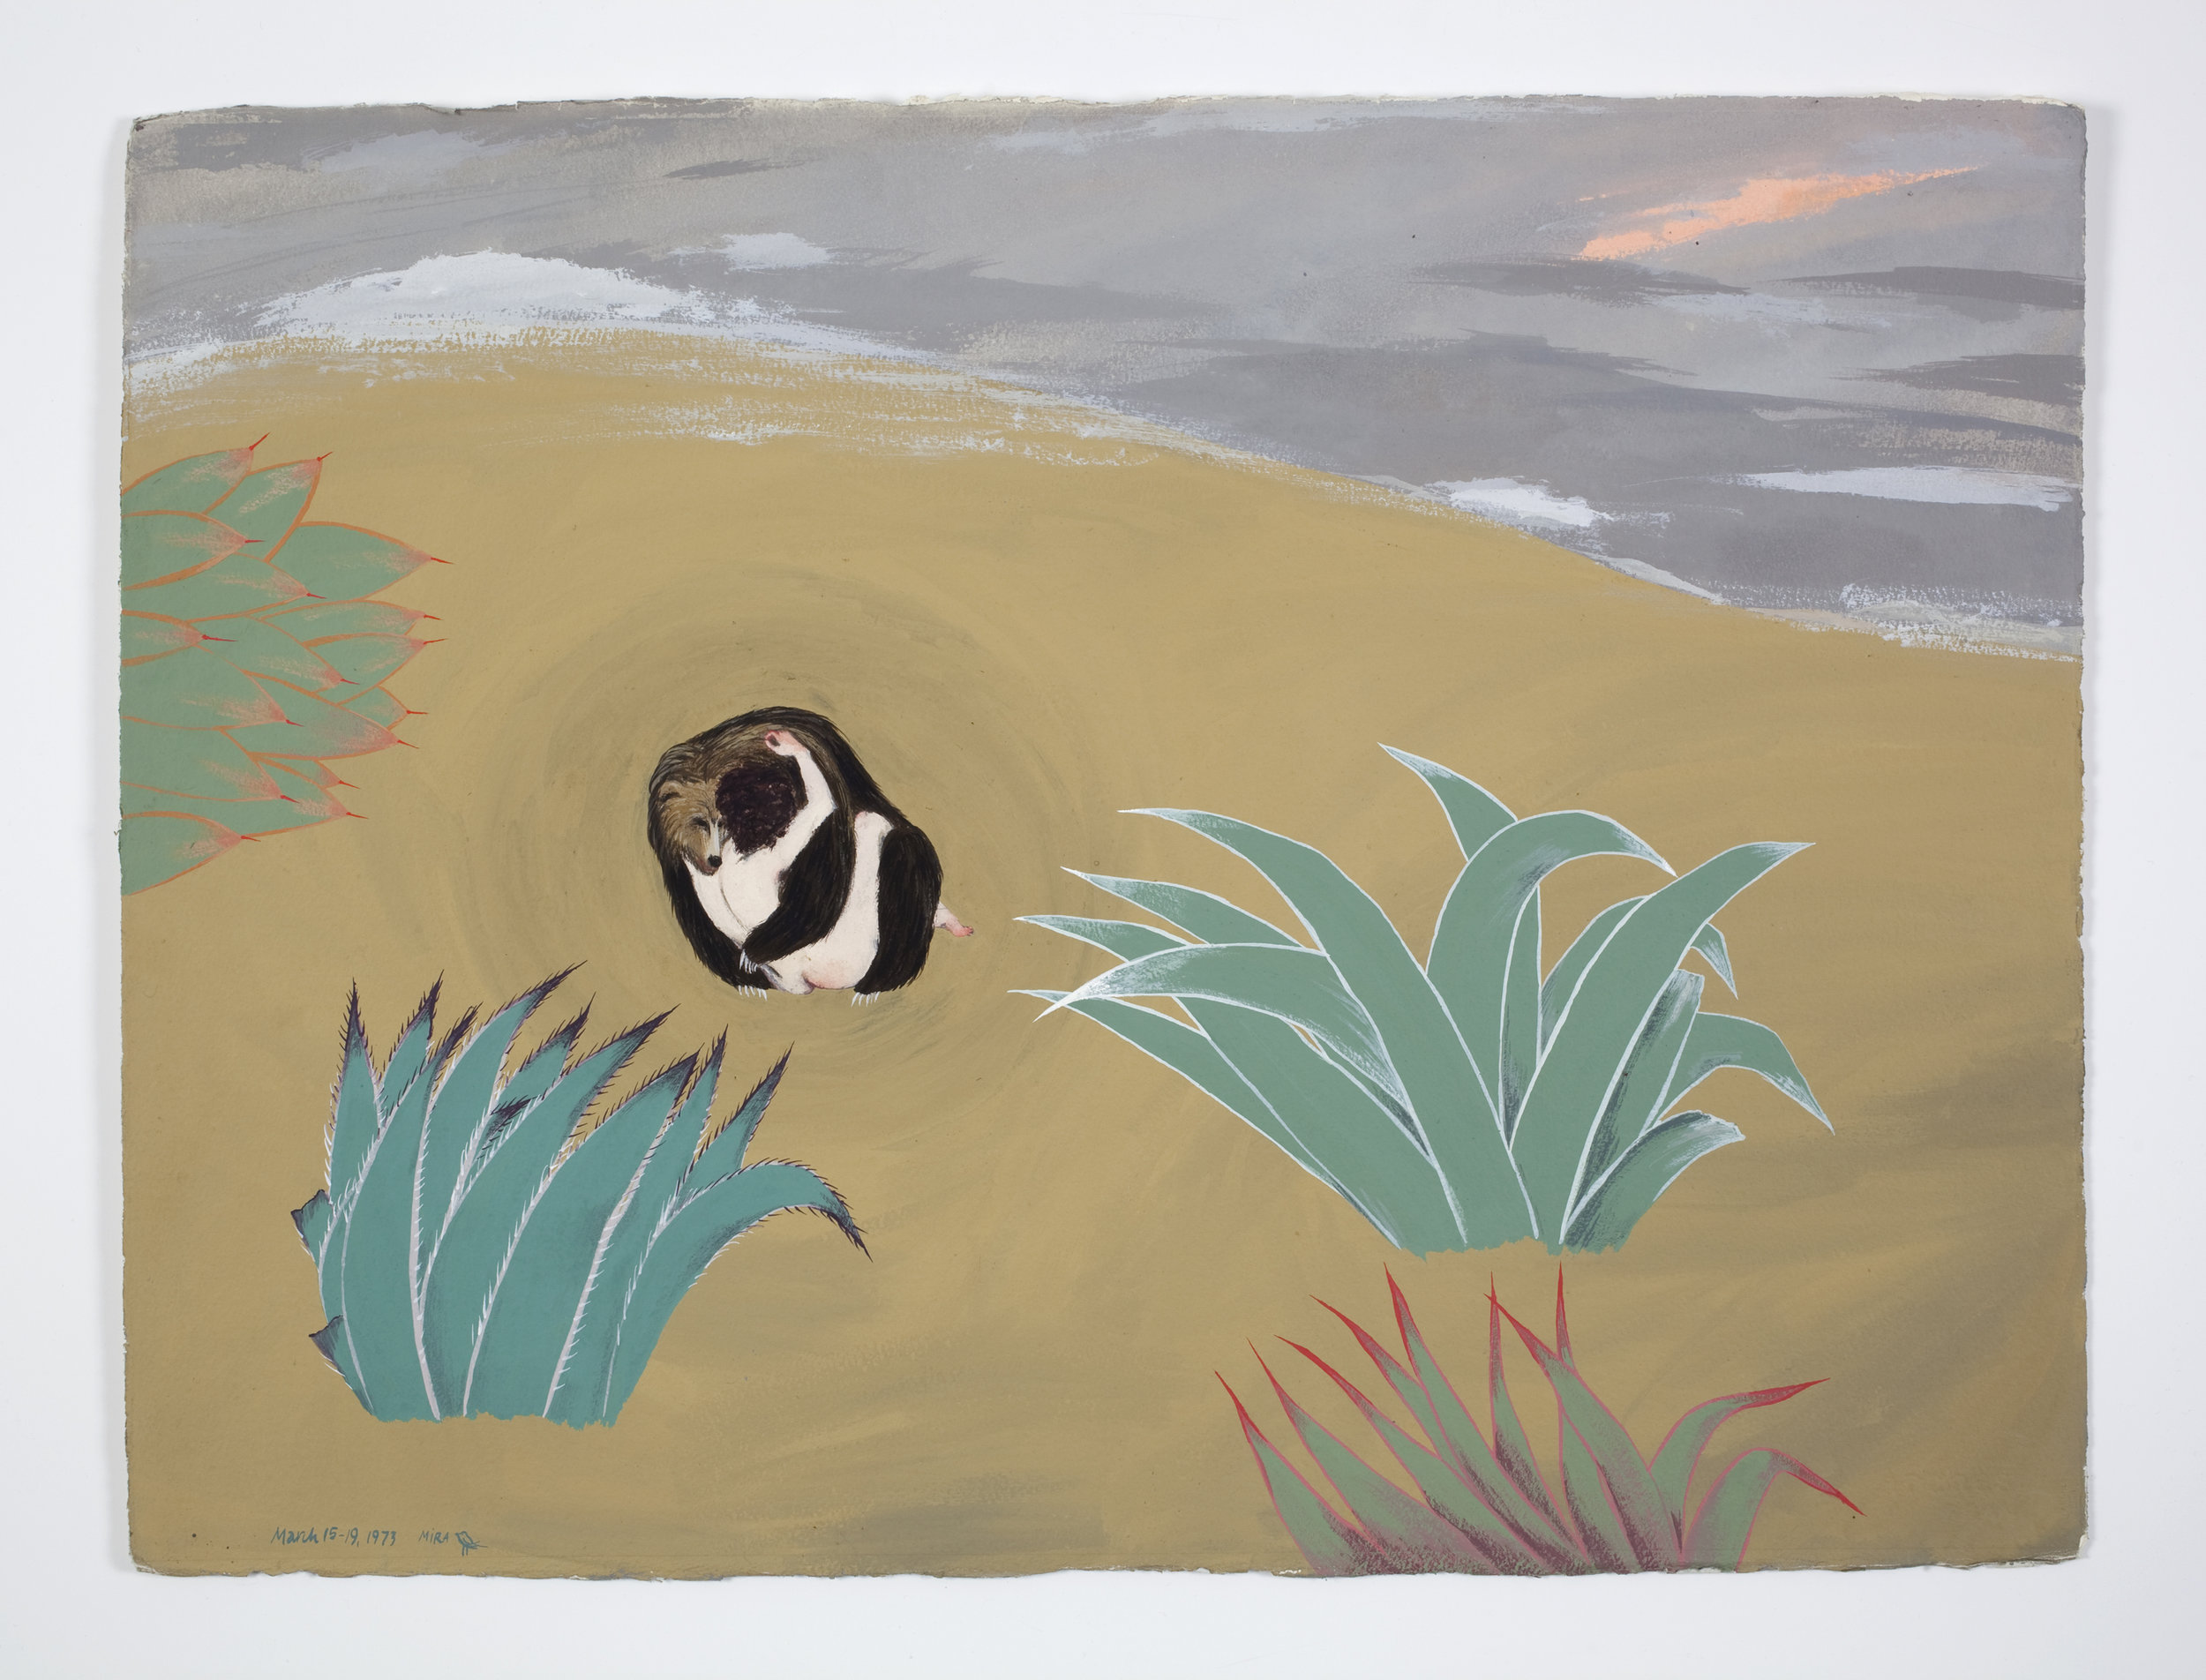 Mira Schor   Bear Triptych (Part III),  March 1973  Gouache on Arches paper  22 x 30 inches